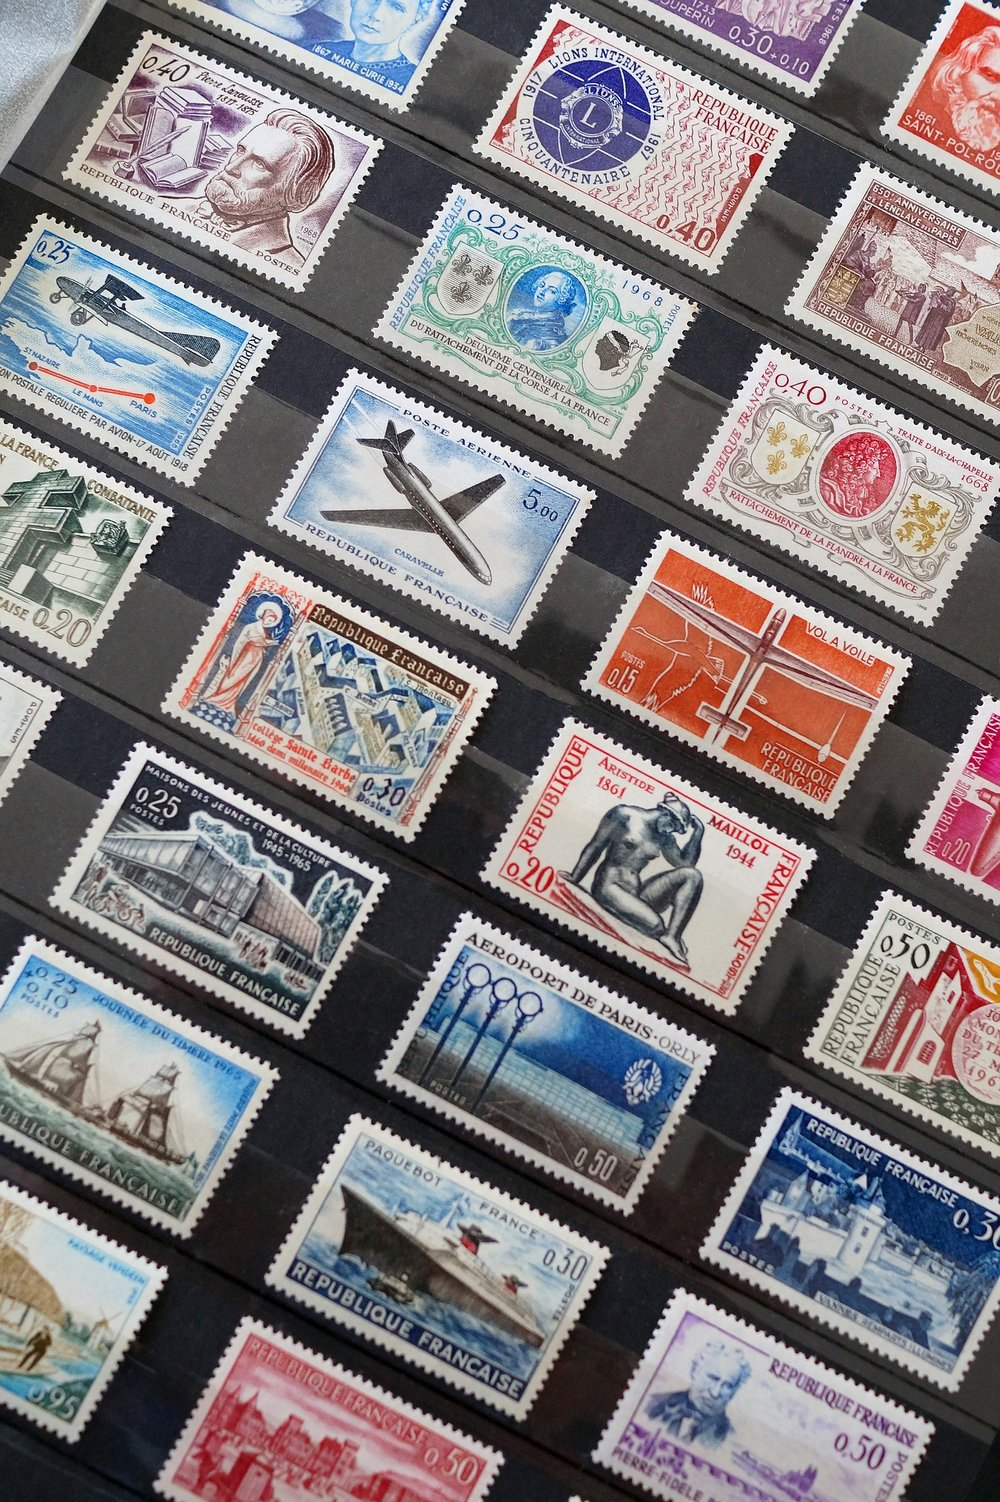 stamps-1803578_1920.jpg